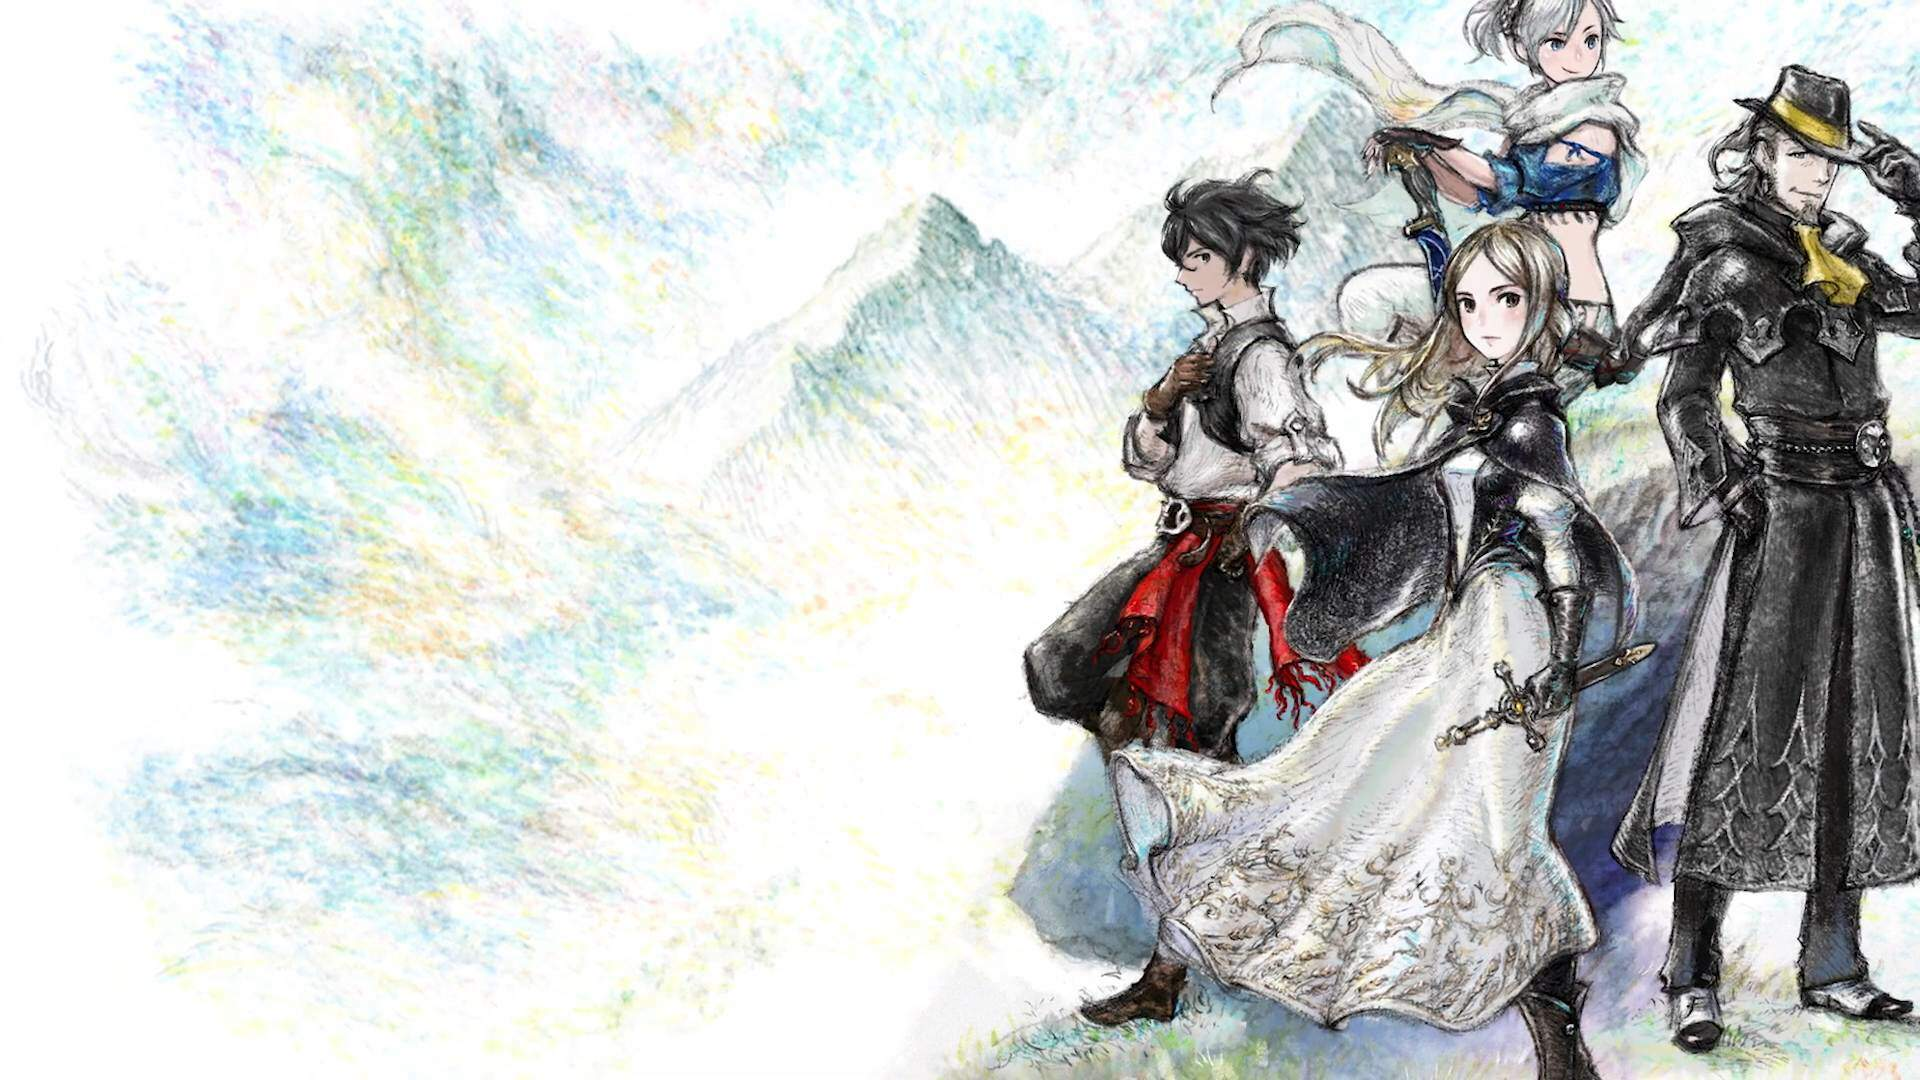 Bravely Default 2 Has Been Delayed to 2021